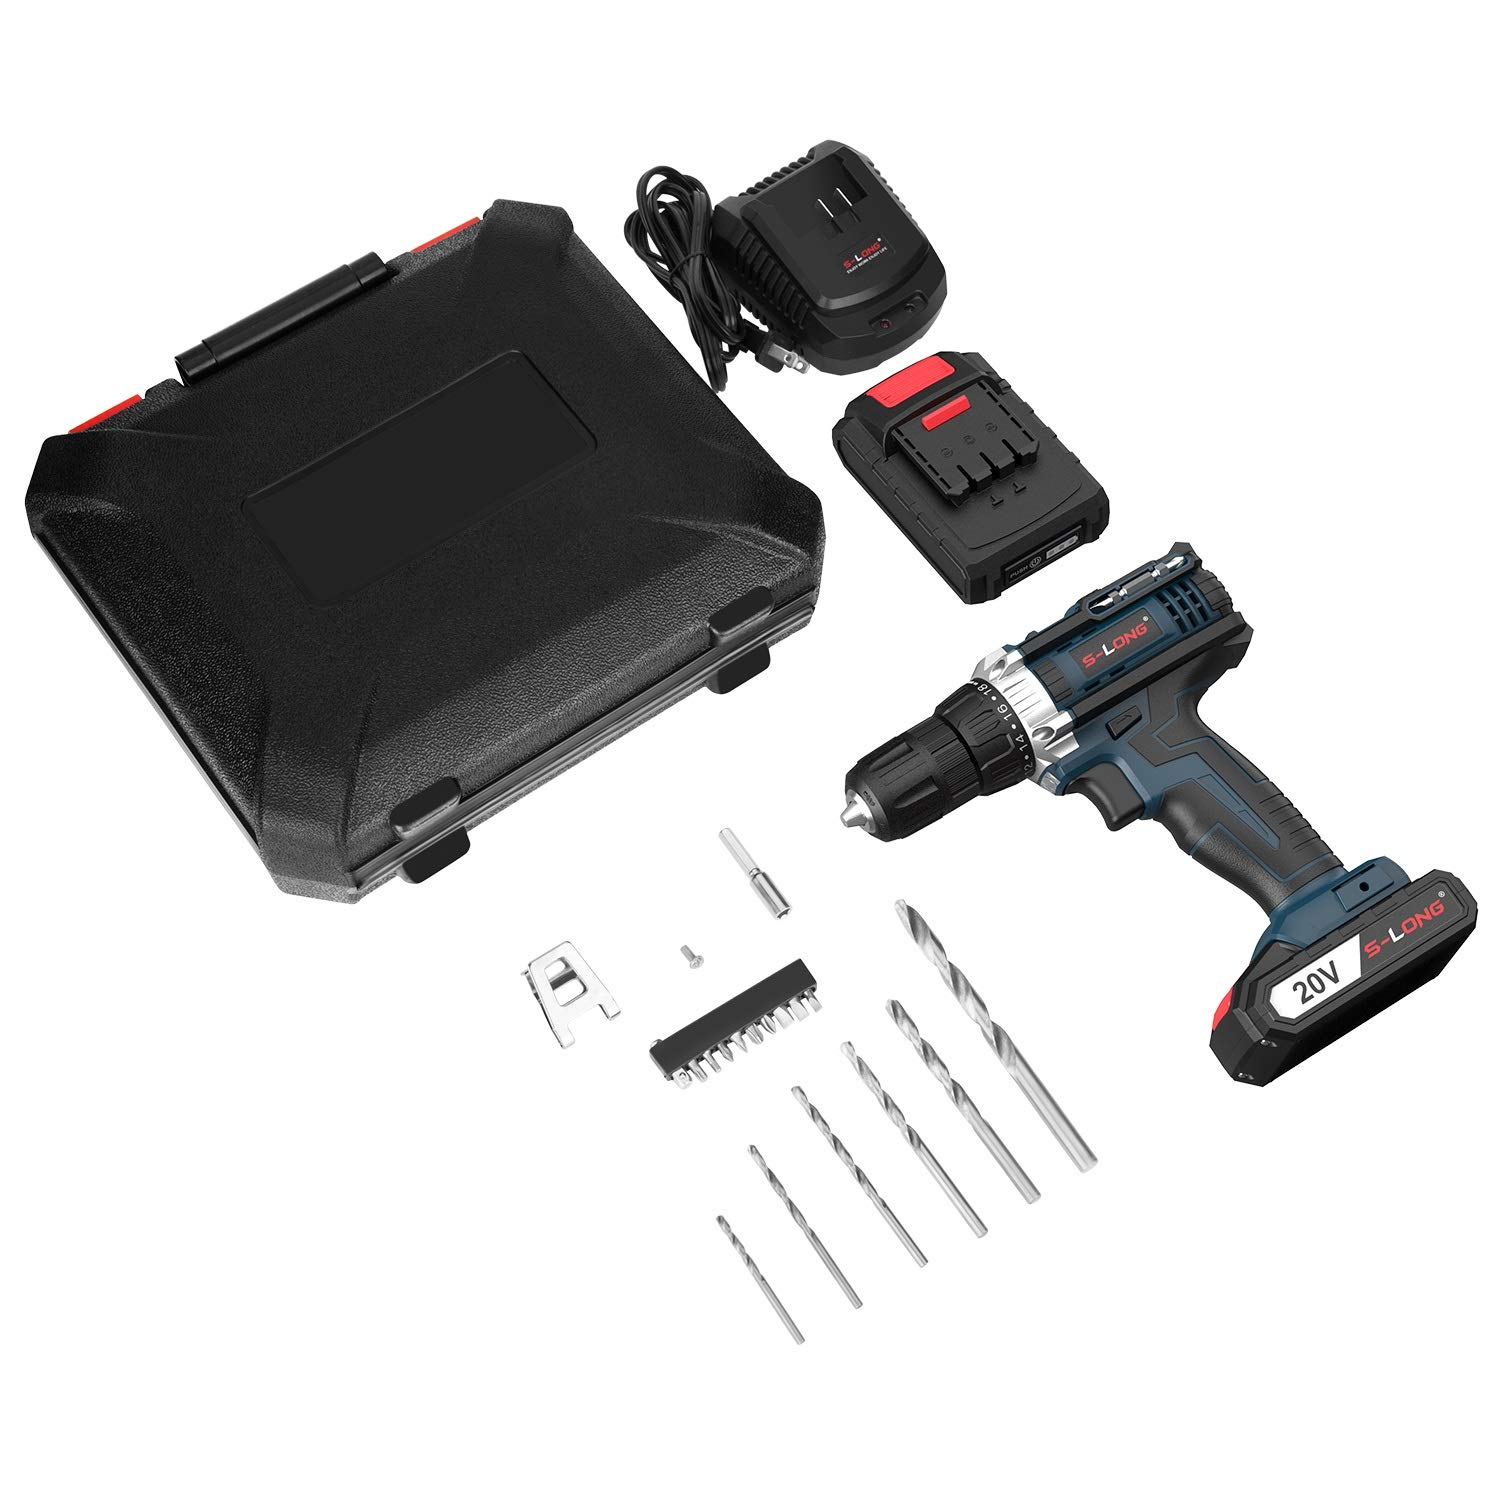 20V/ Cordless/ Drill/ with/ 2/ Batteries/ and/ Charger,1//2/ Inch/ Cordless/ Drill/ Set,Variable/ Speed/ Drill/ Driver/ Cordless/ by/ S-LONG